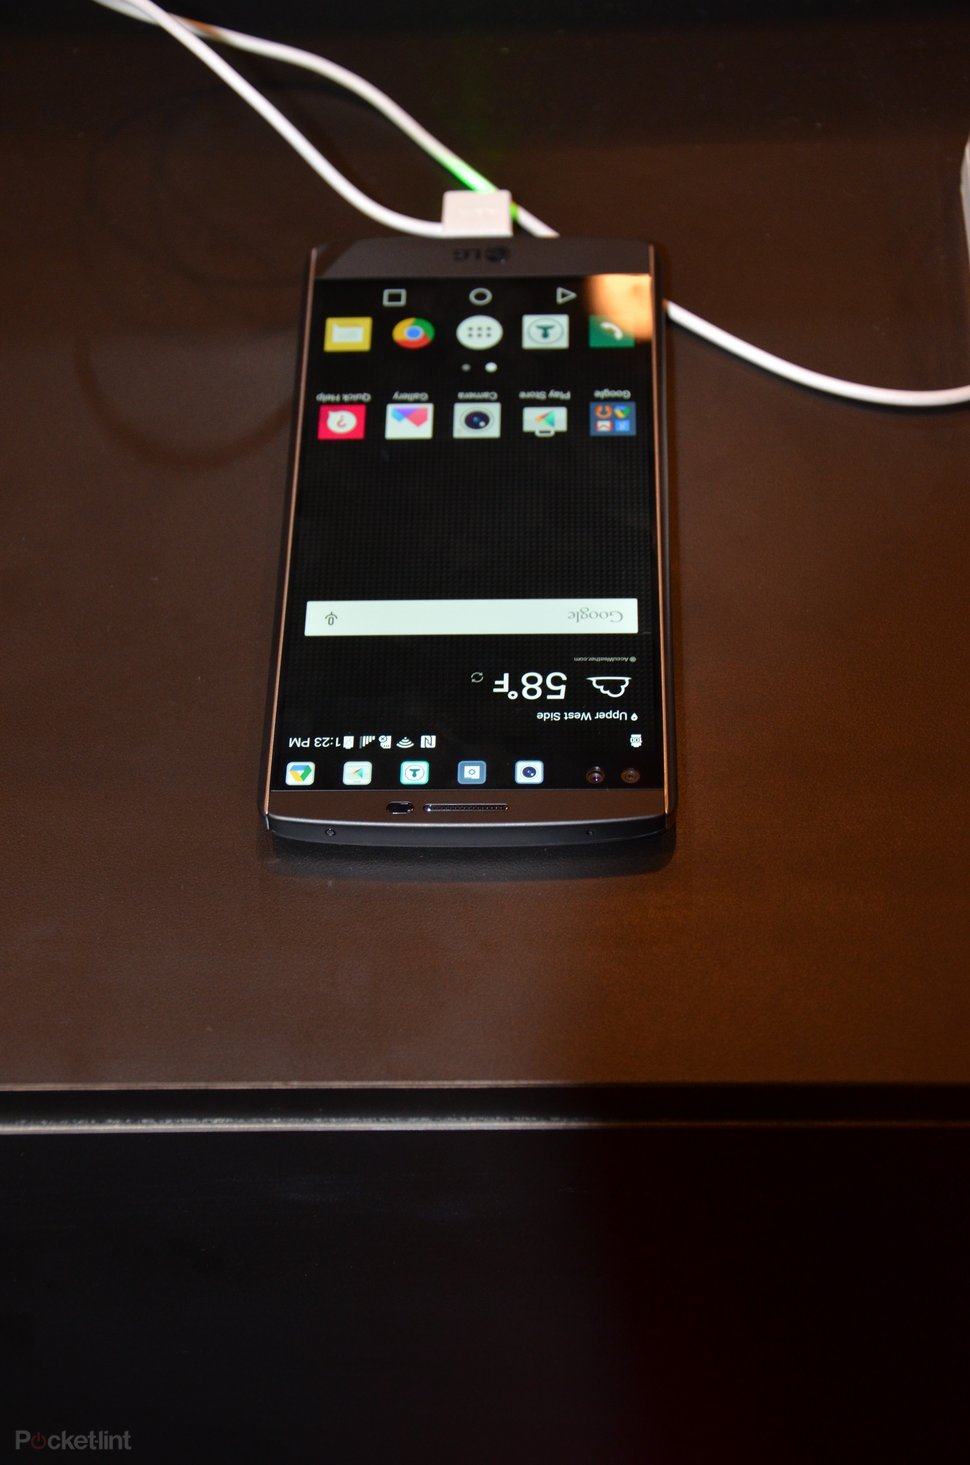 LG V10: A top-tier phone that doubles up on screens and selfie